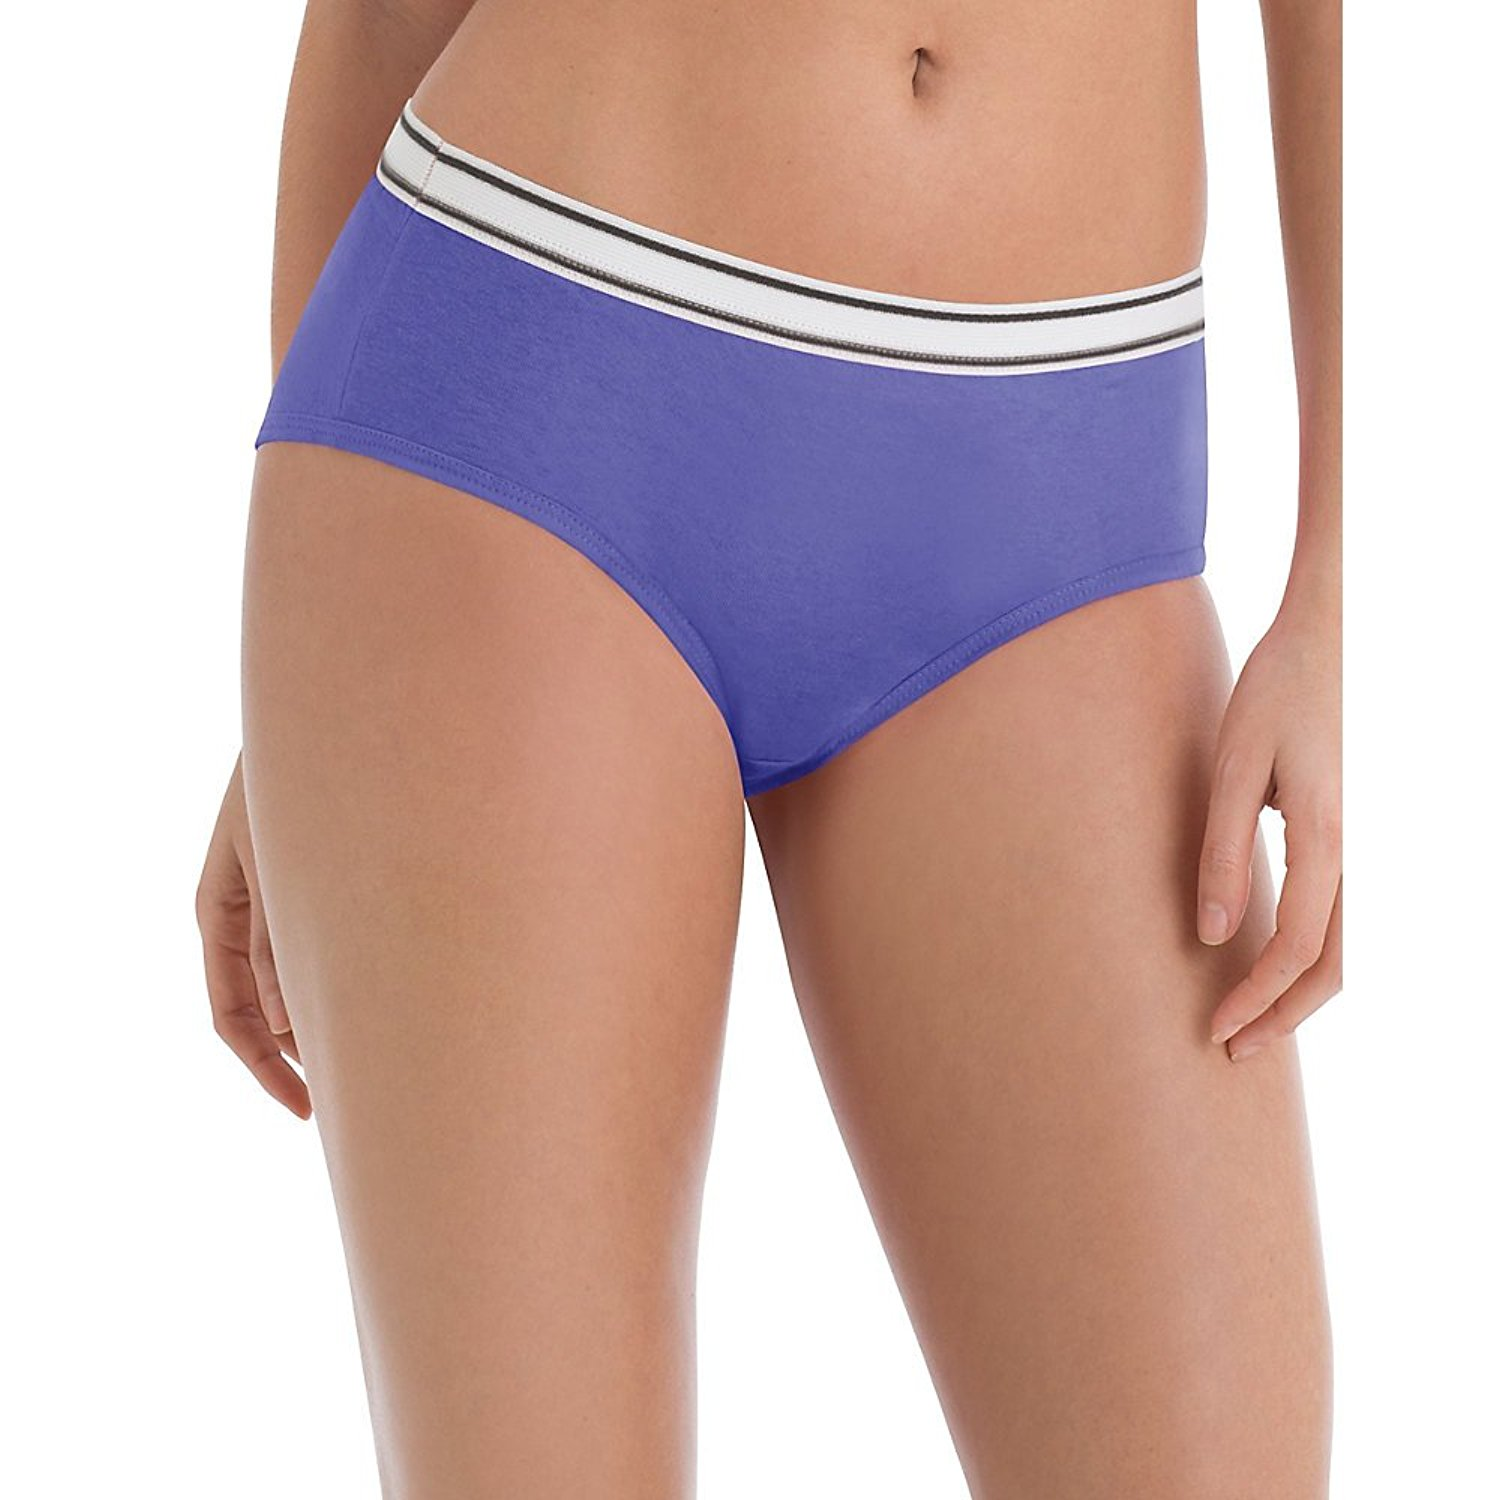 e3cbbbdd1903 Cheap Hanes Hipster Panties, find Hanes Hipster Panties deals on ...